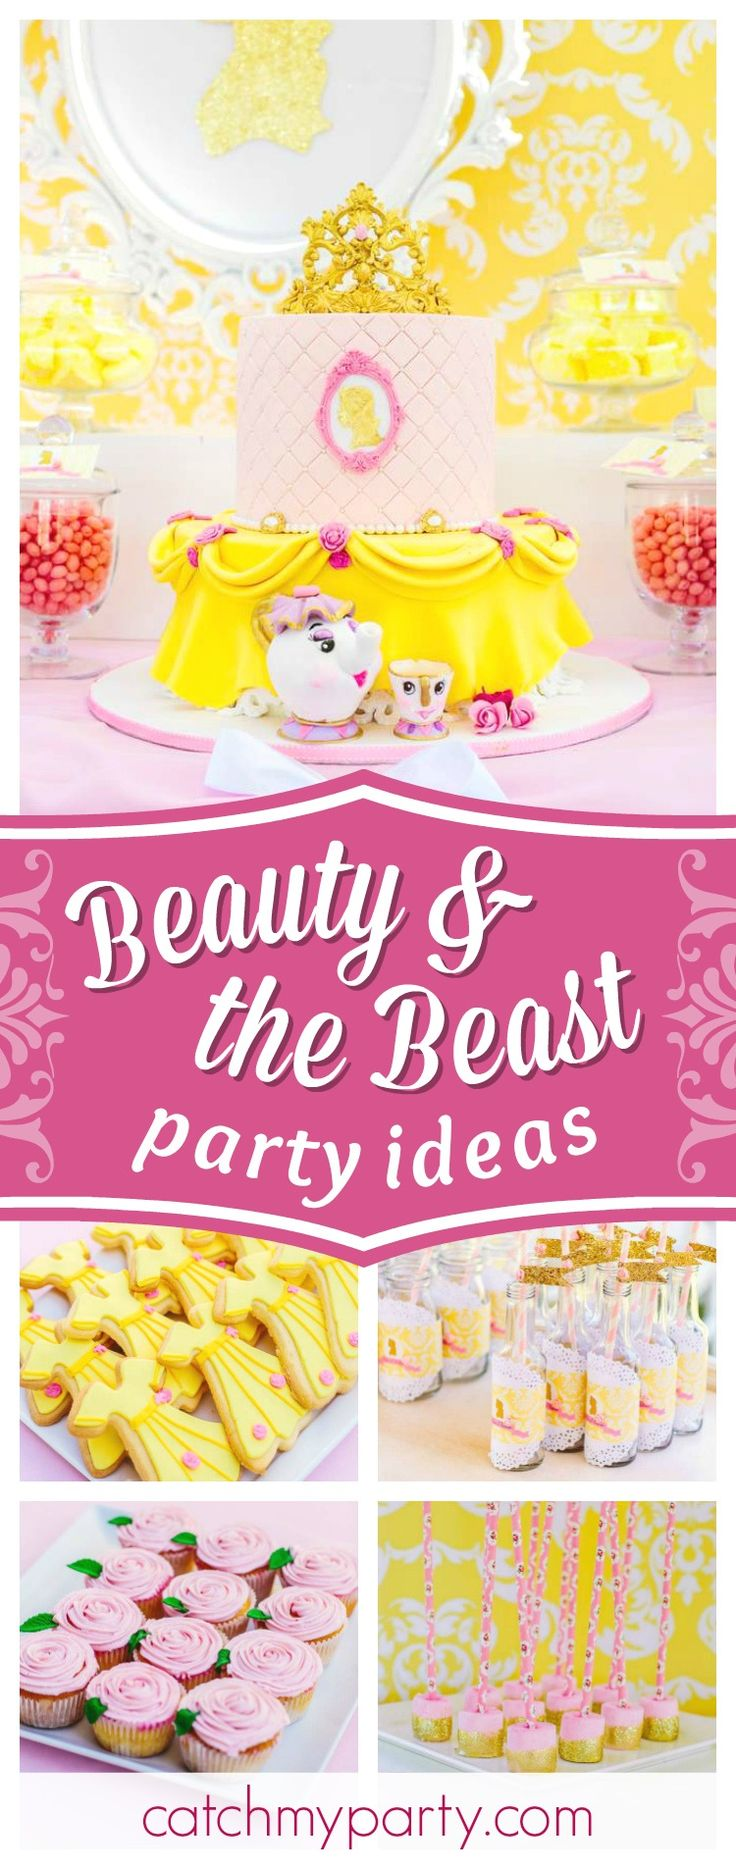 Don't miss this pretty Princess Belle Beauty and the Beast birthday party. The cake is incredible!! See more party ideas and share yours at CatchMyParty.com